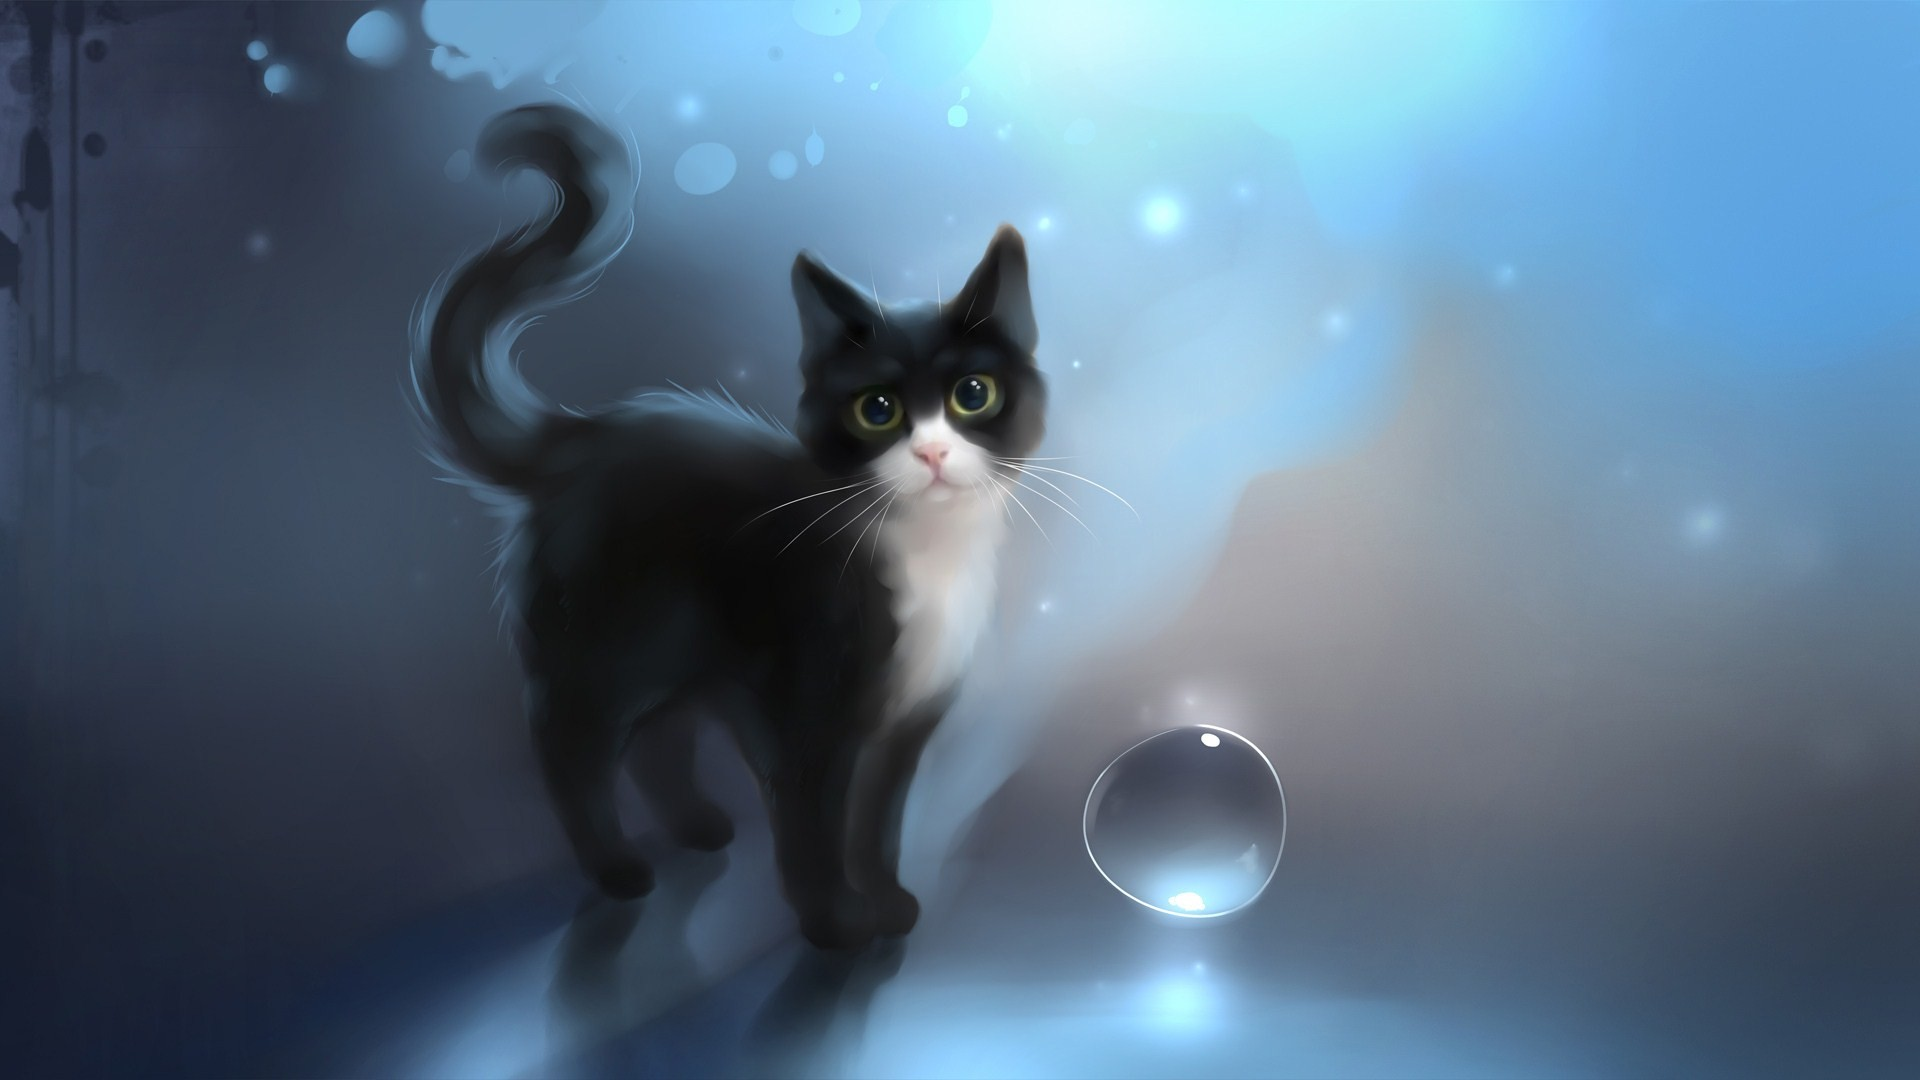 60 Cat Wallpapers Download Free Awesome Full Hd Wallpapers For